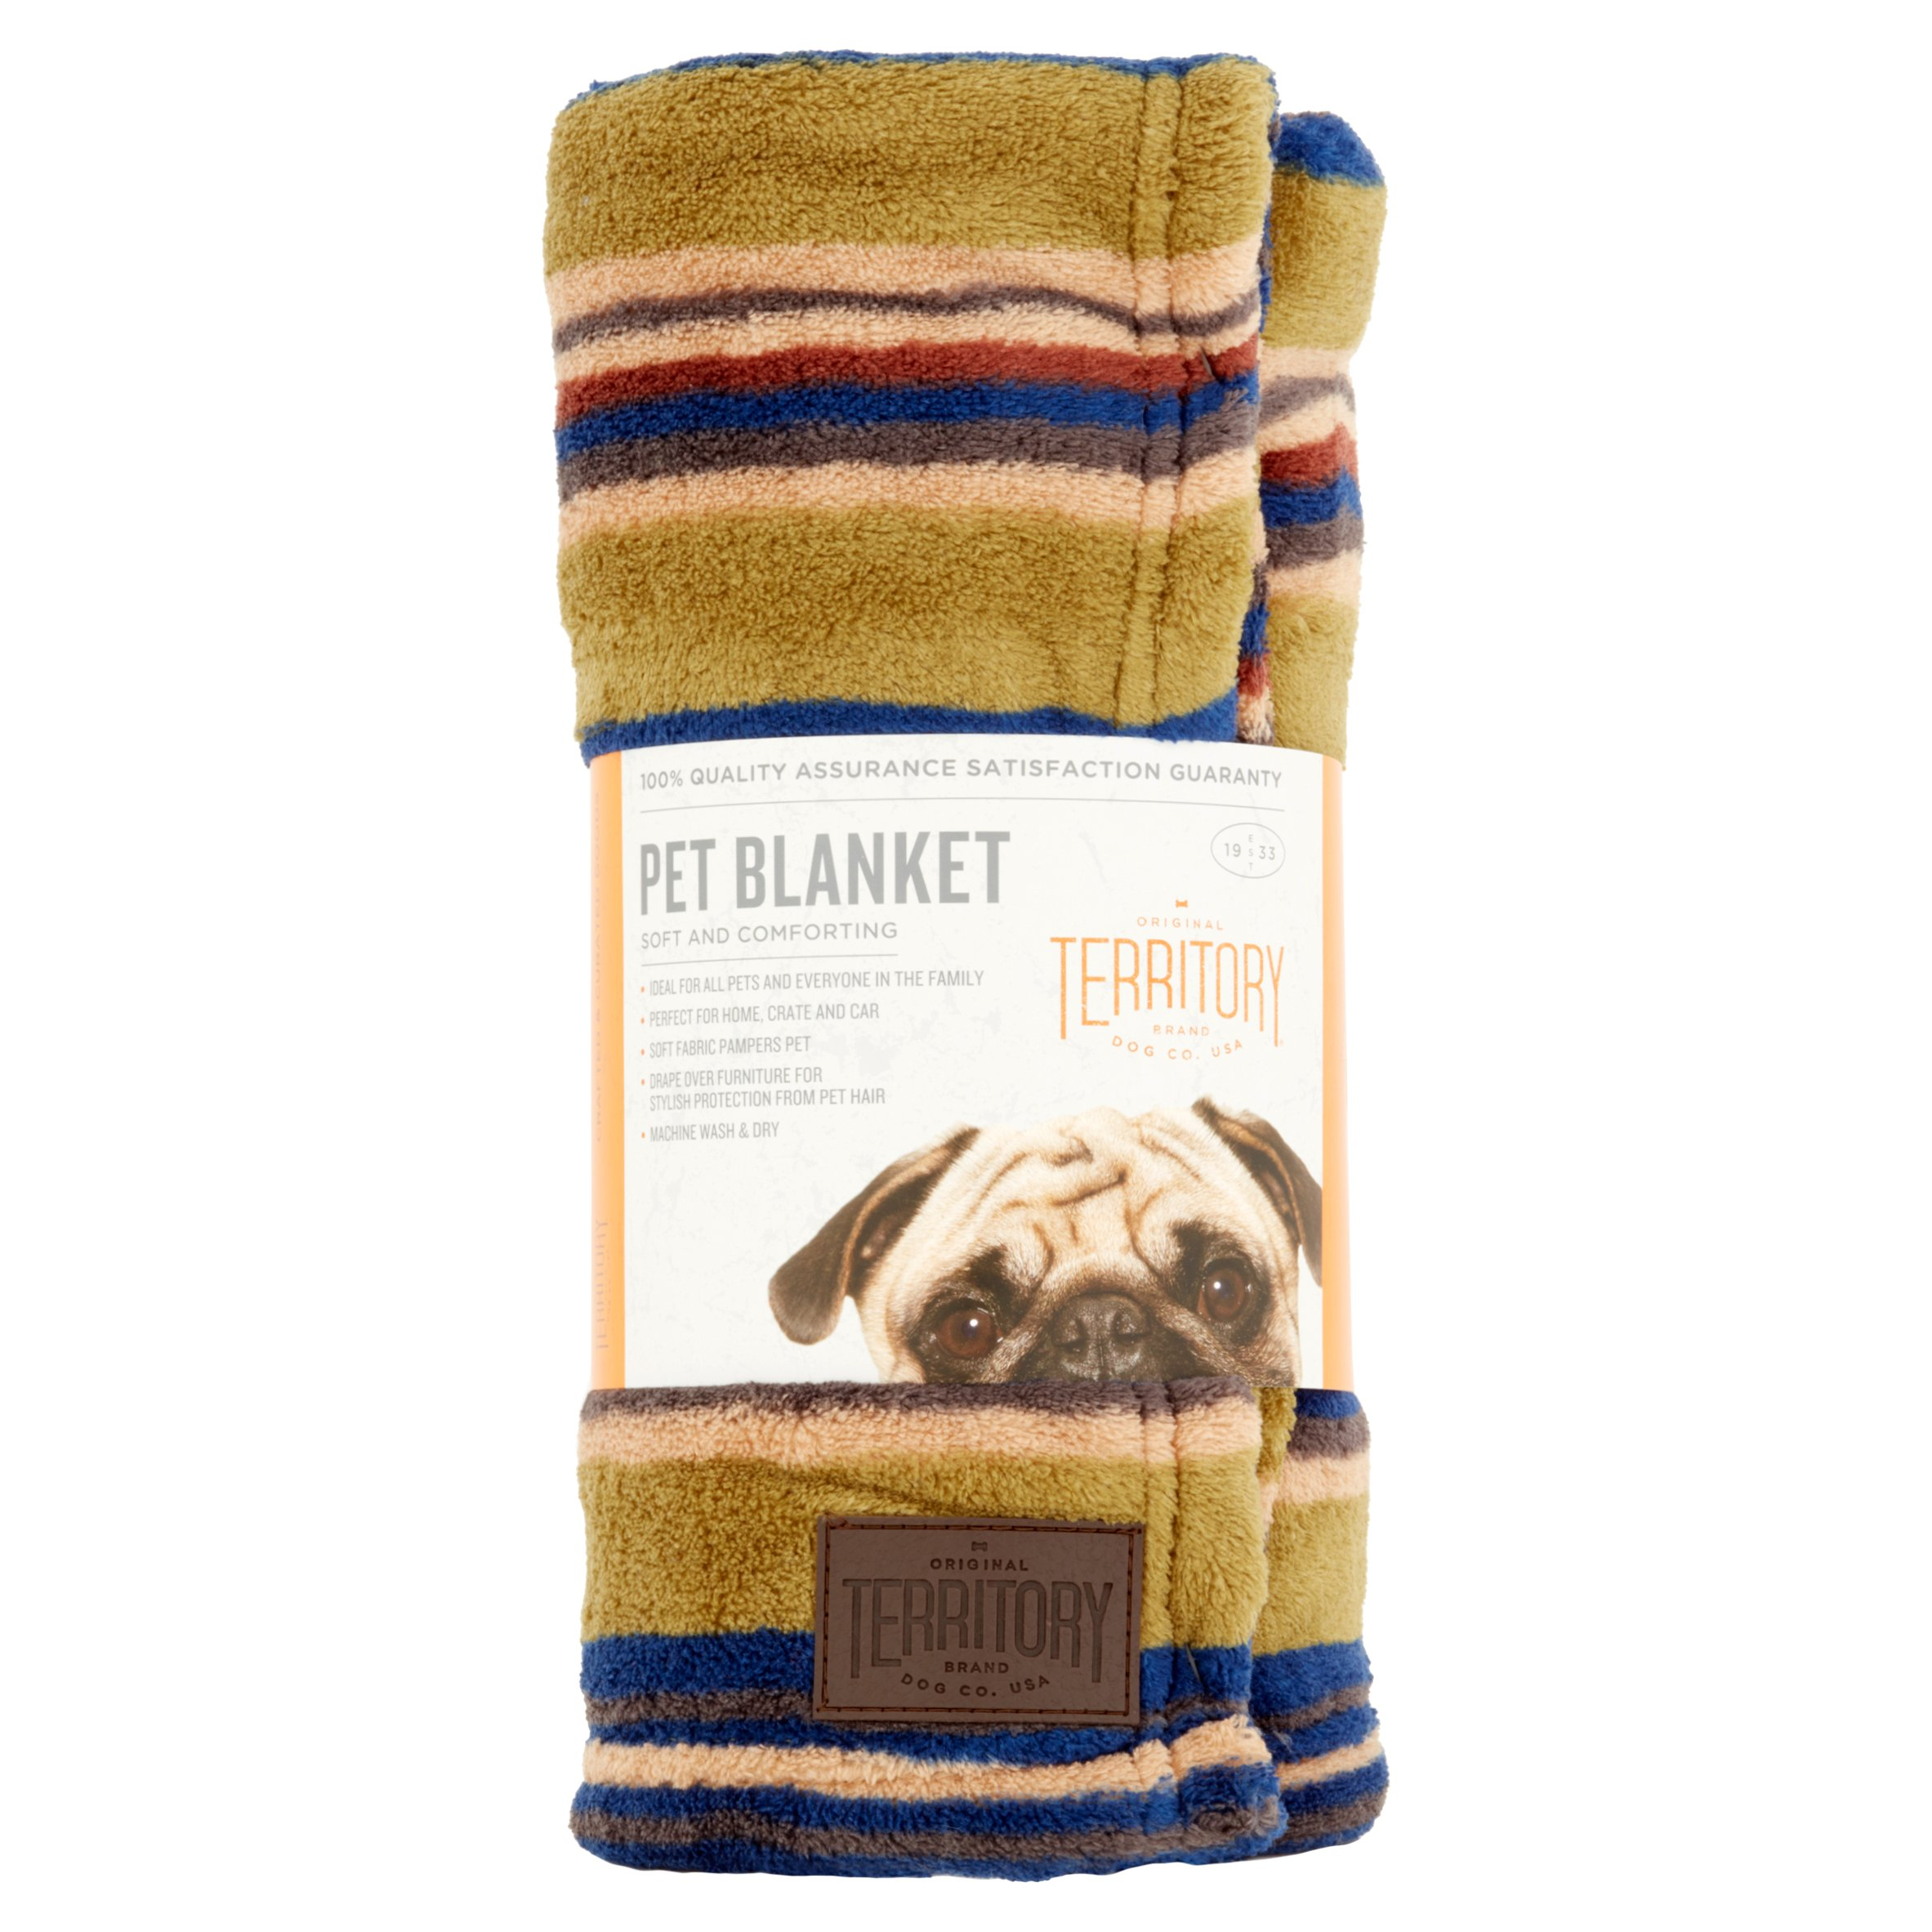 Territory Soft and Comforting Pet Blanket